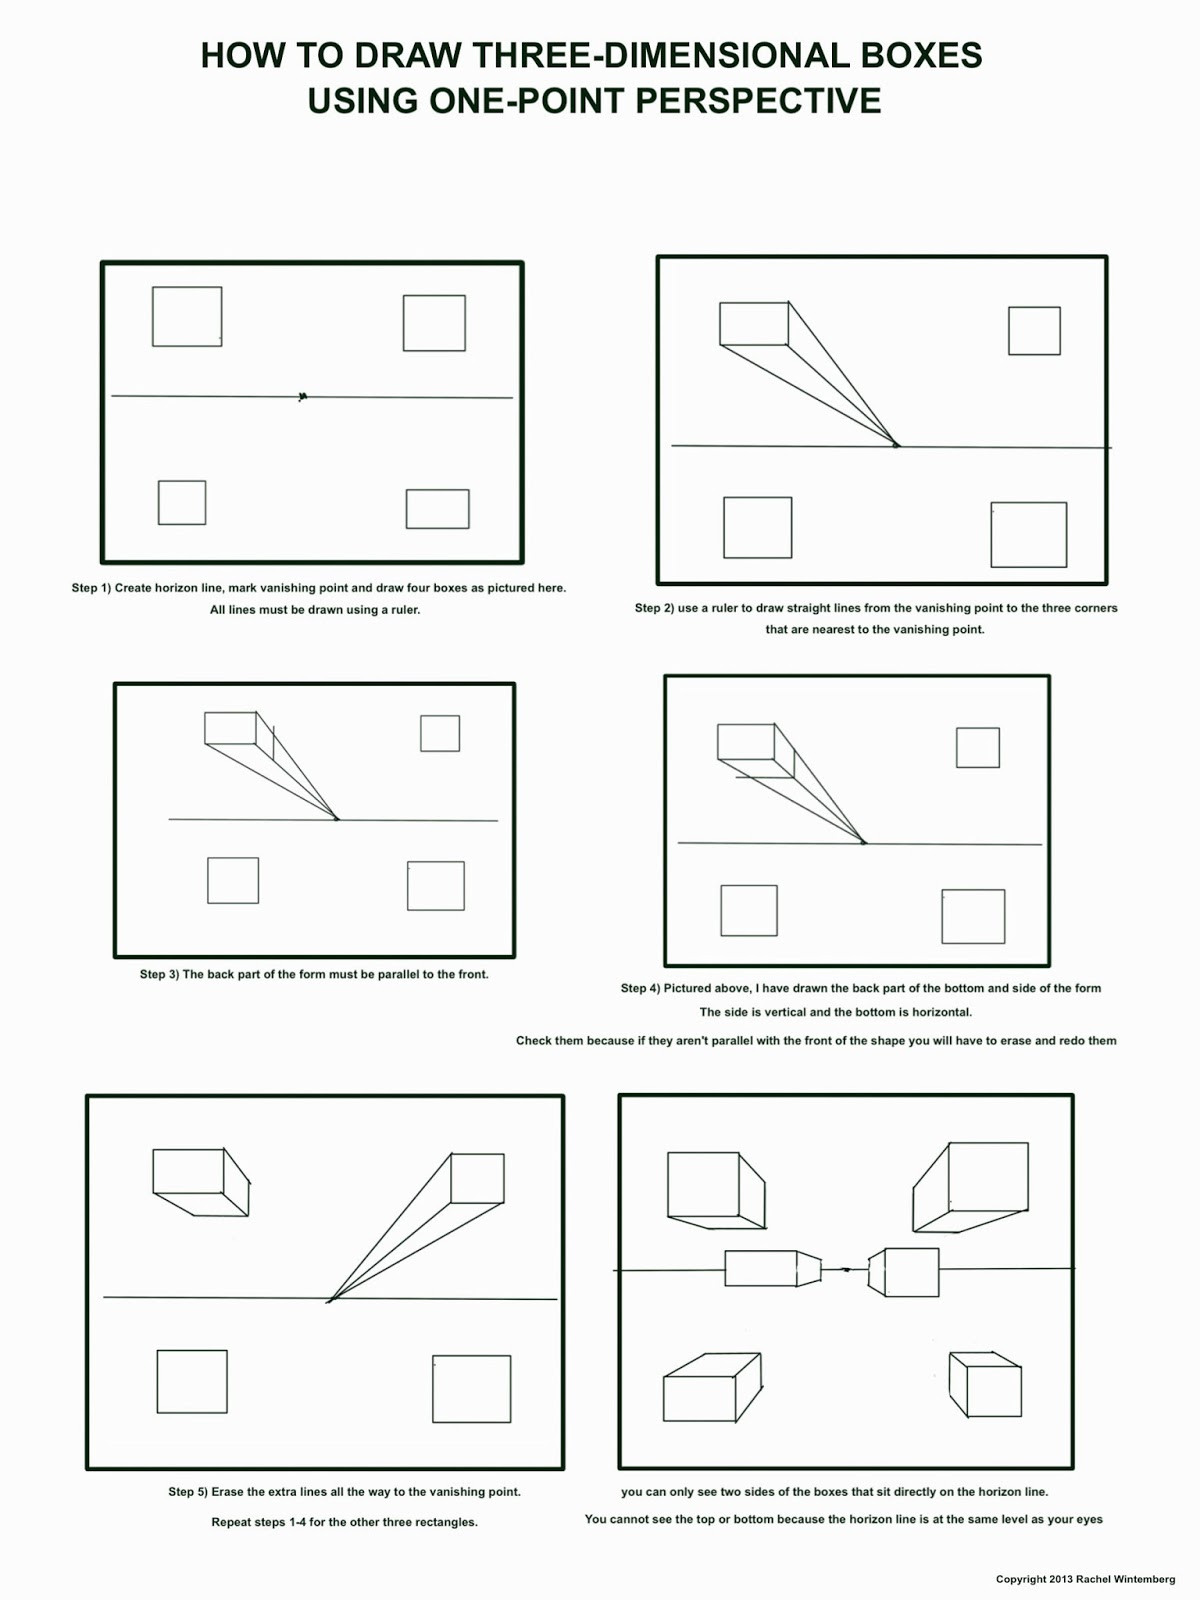 grade 6 2 one point perspective name